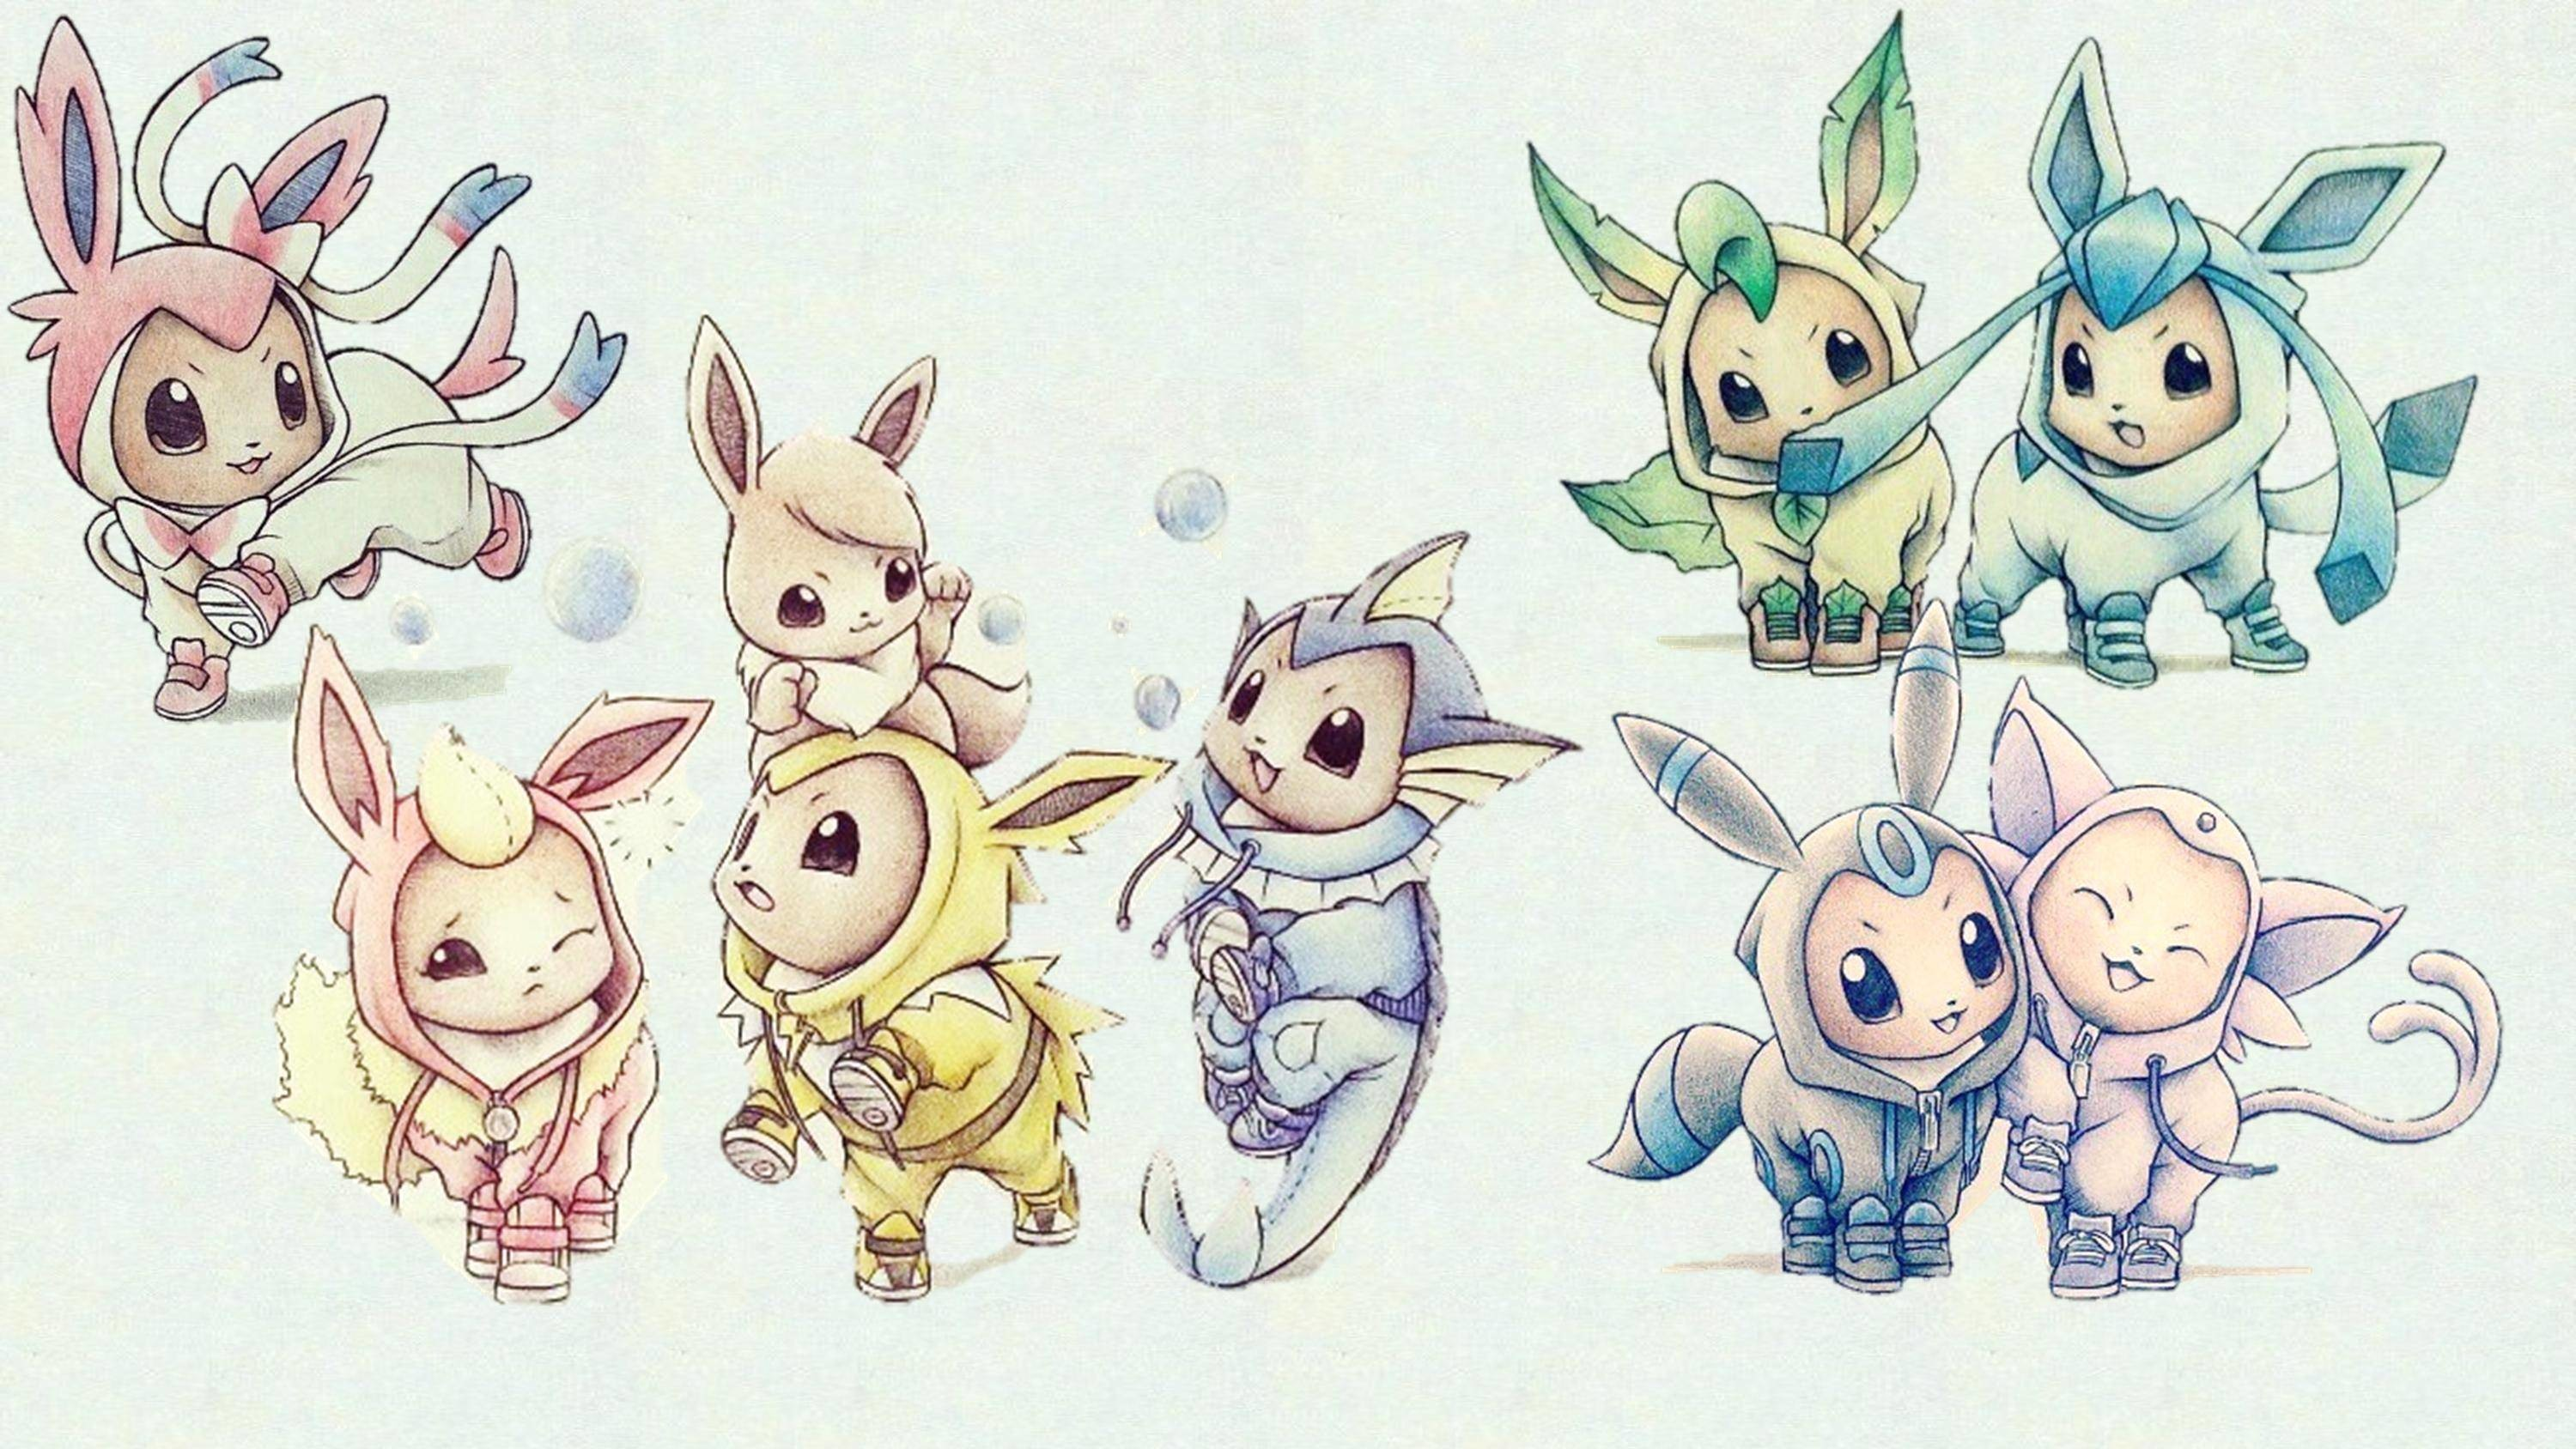 1000+ images about Gaming on Pinterest   Pokemon eevee, Cosplay pokemon and  Deer